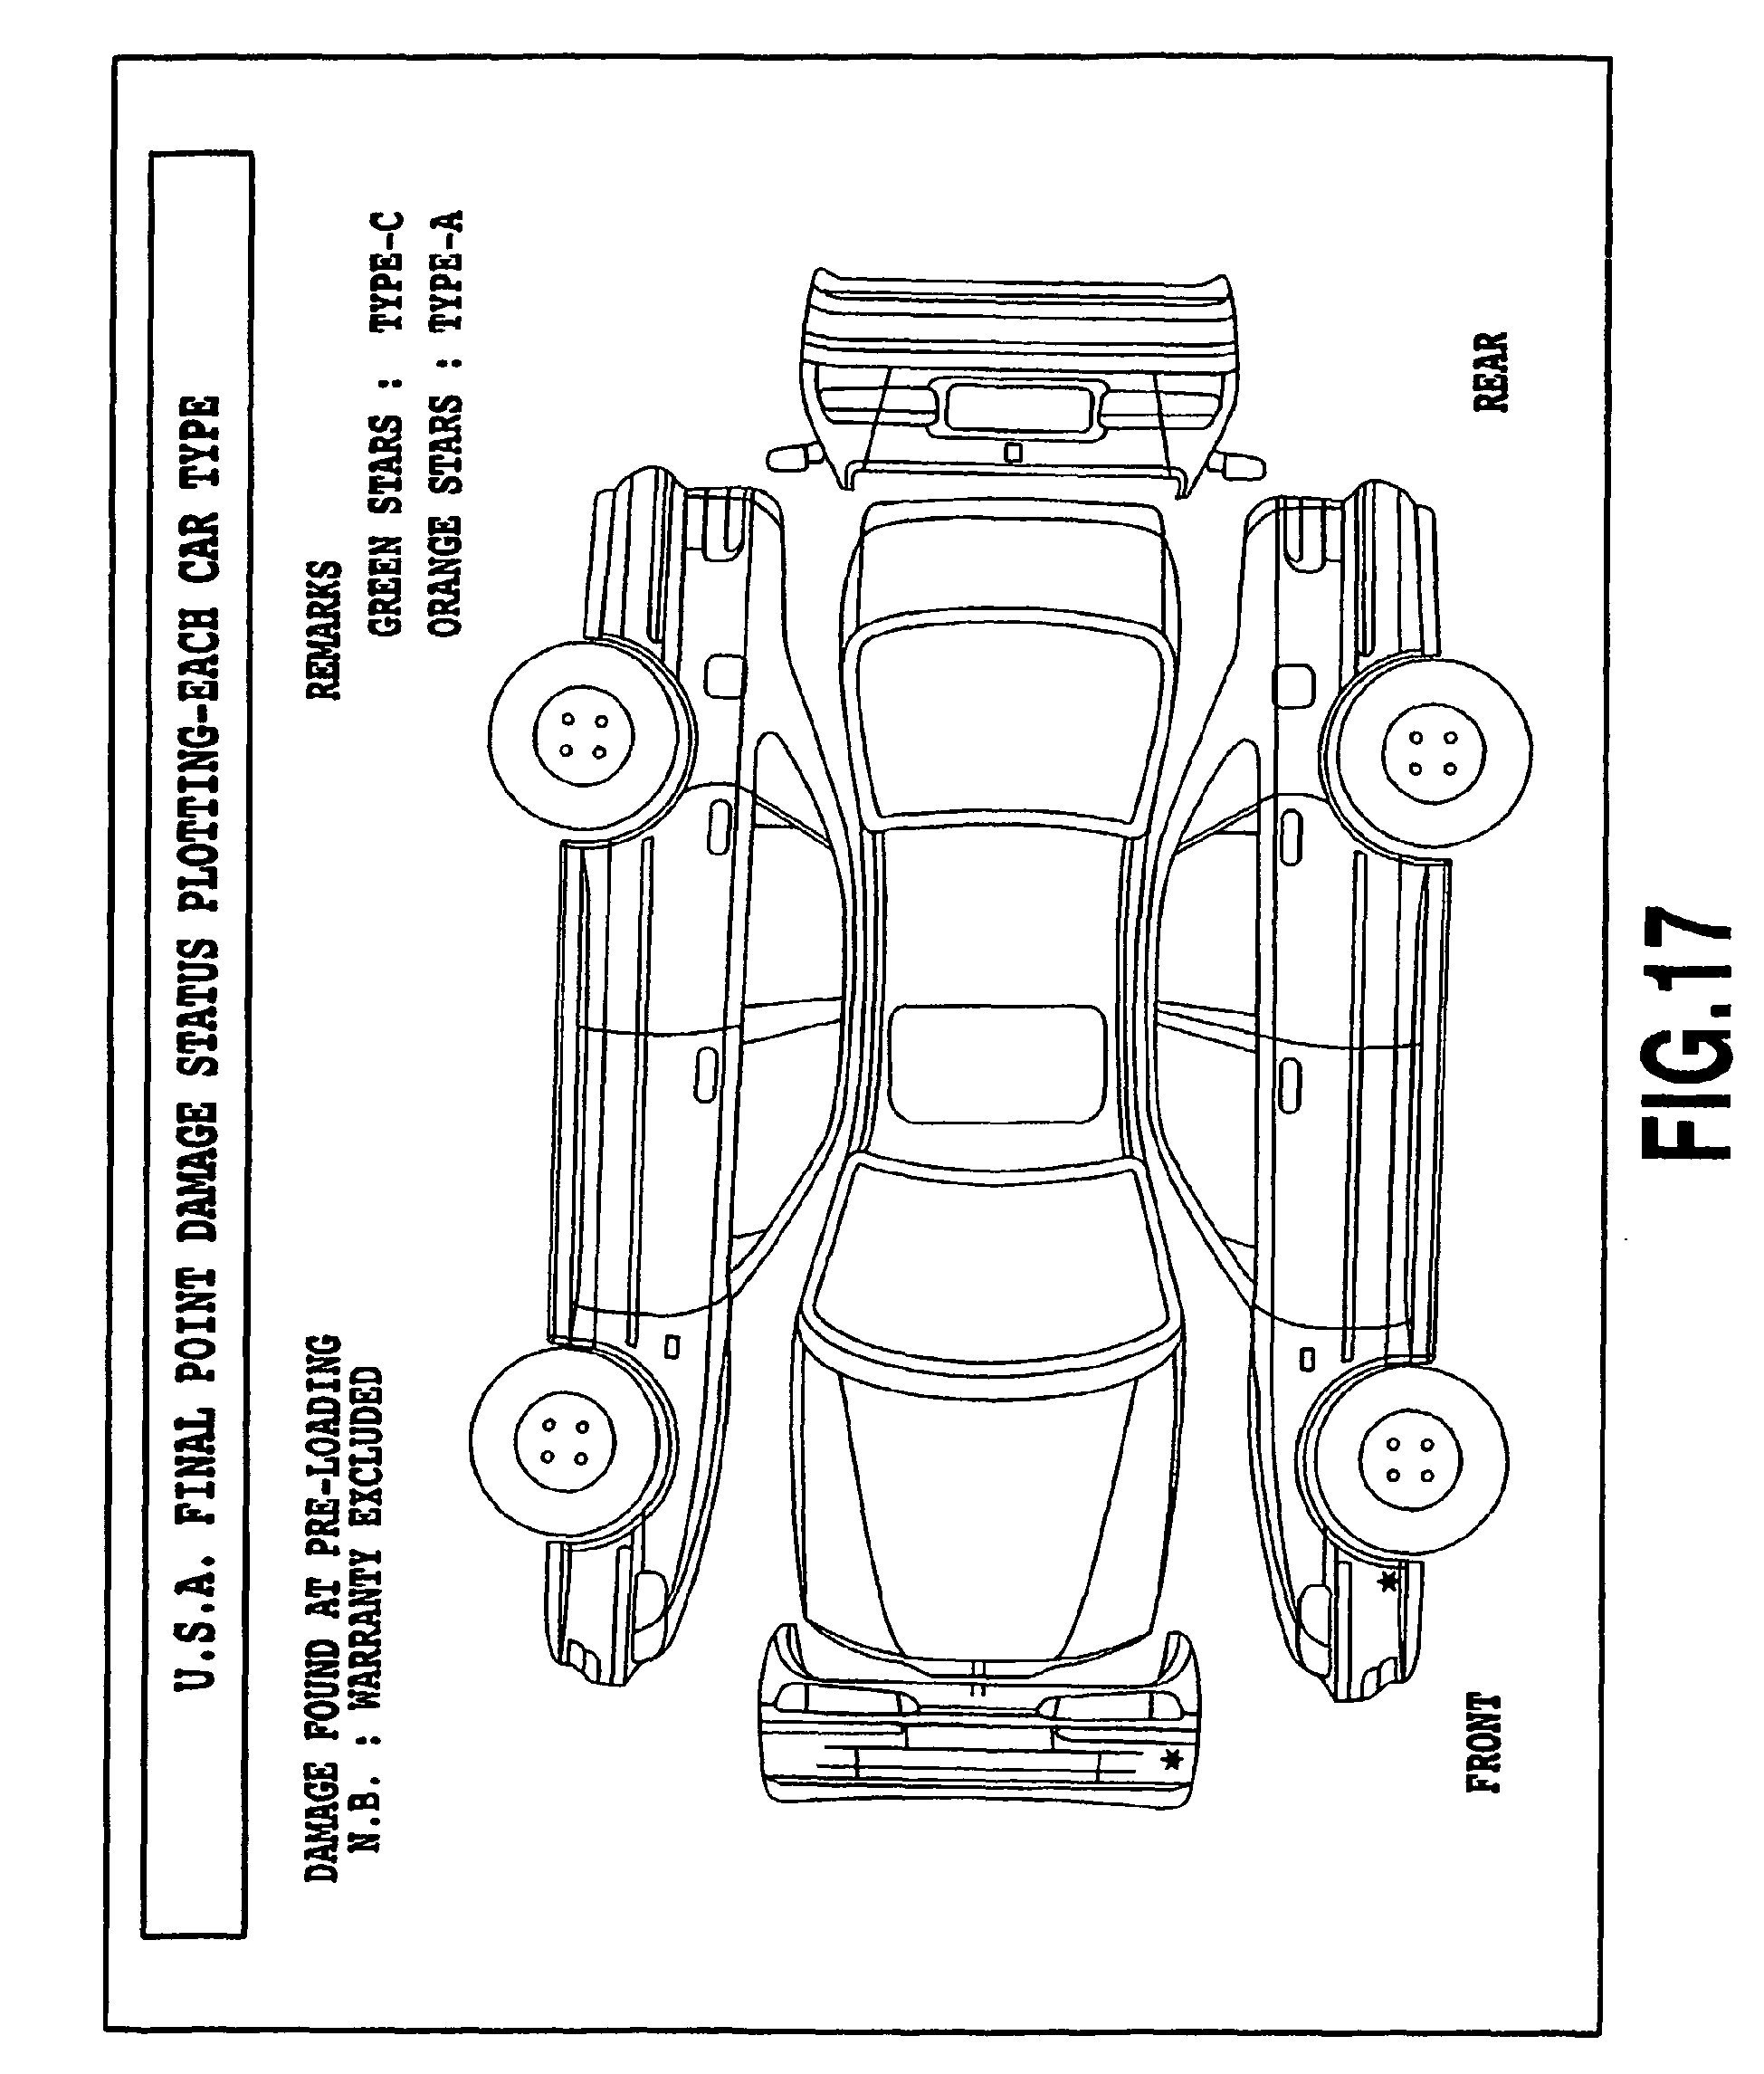 car damage diagram sheet frame wiring sketch coloring page